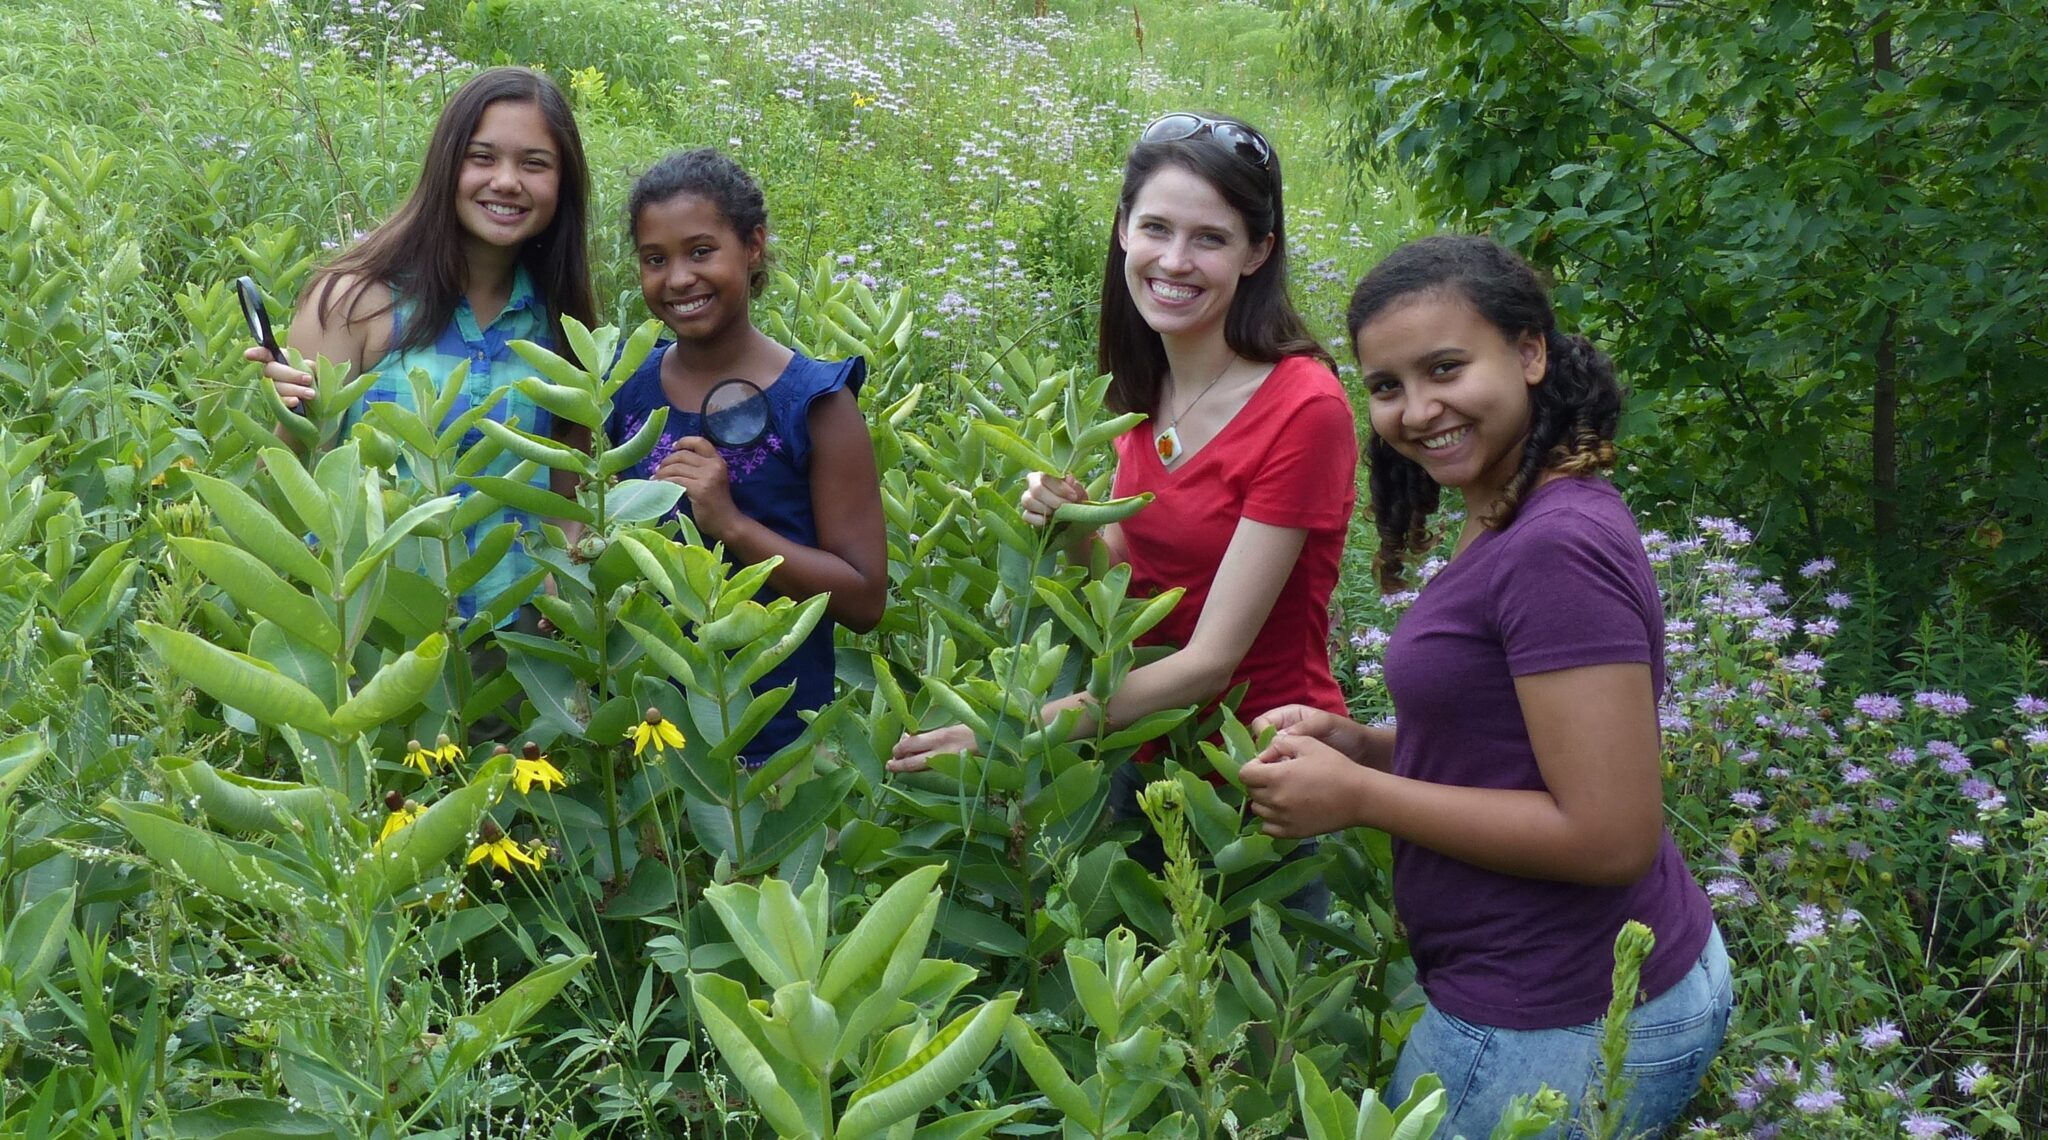 citizen science lessons: SciGirls Offers Real STEM Role Models for Young Girls